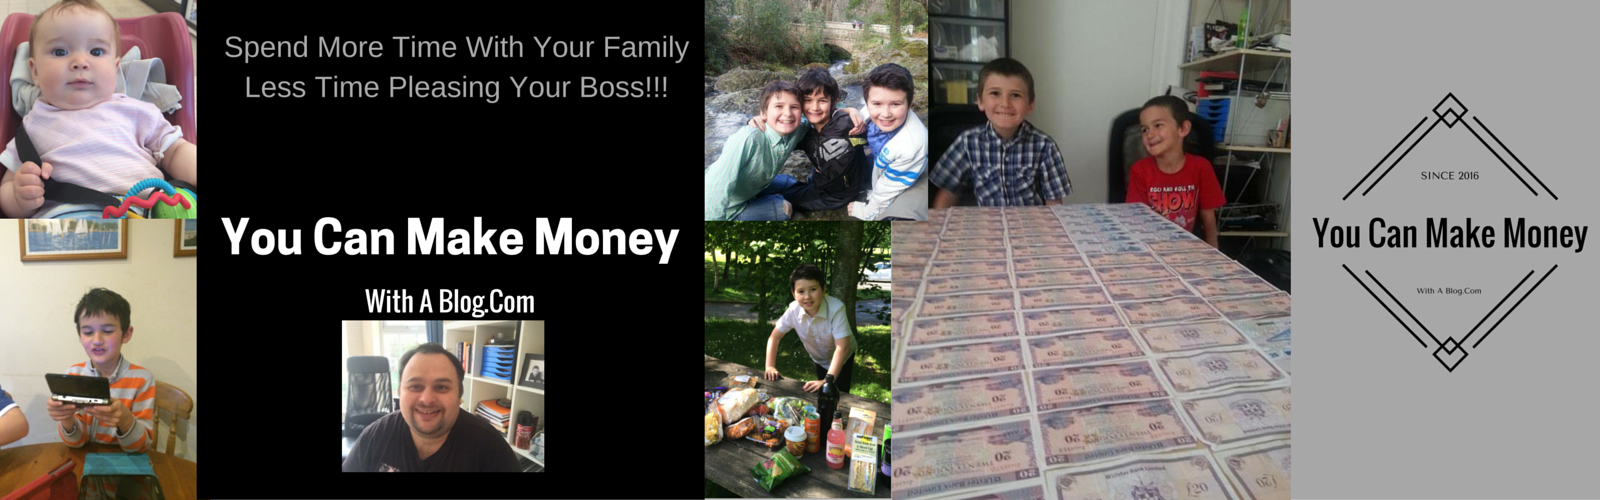 You Can Make Money with a blog 2 changed